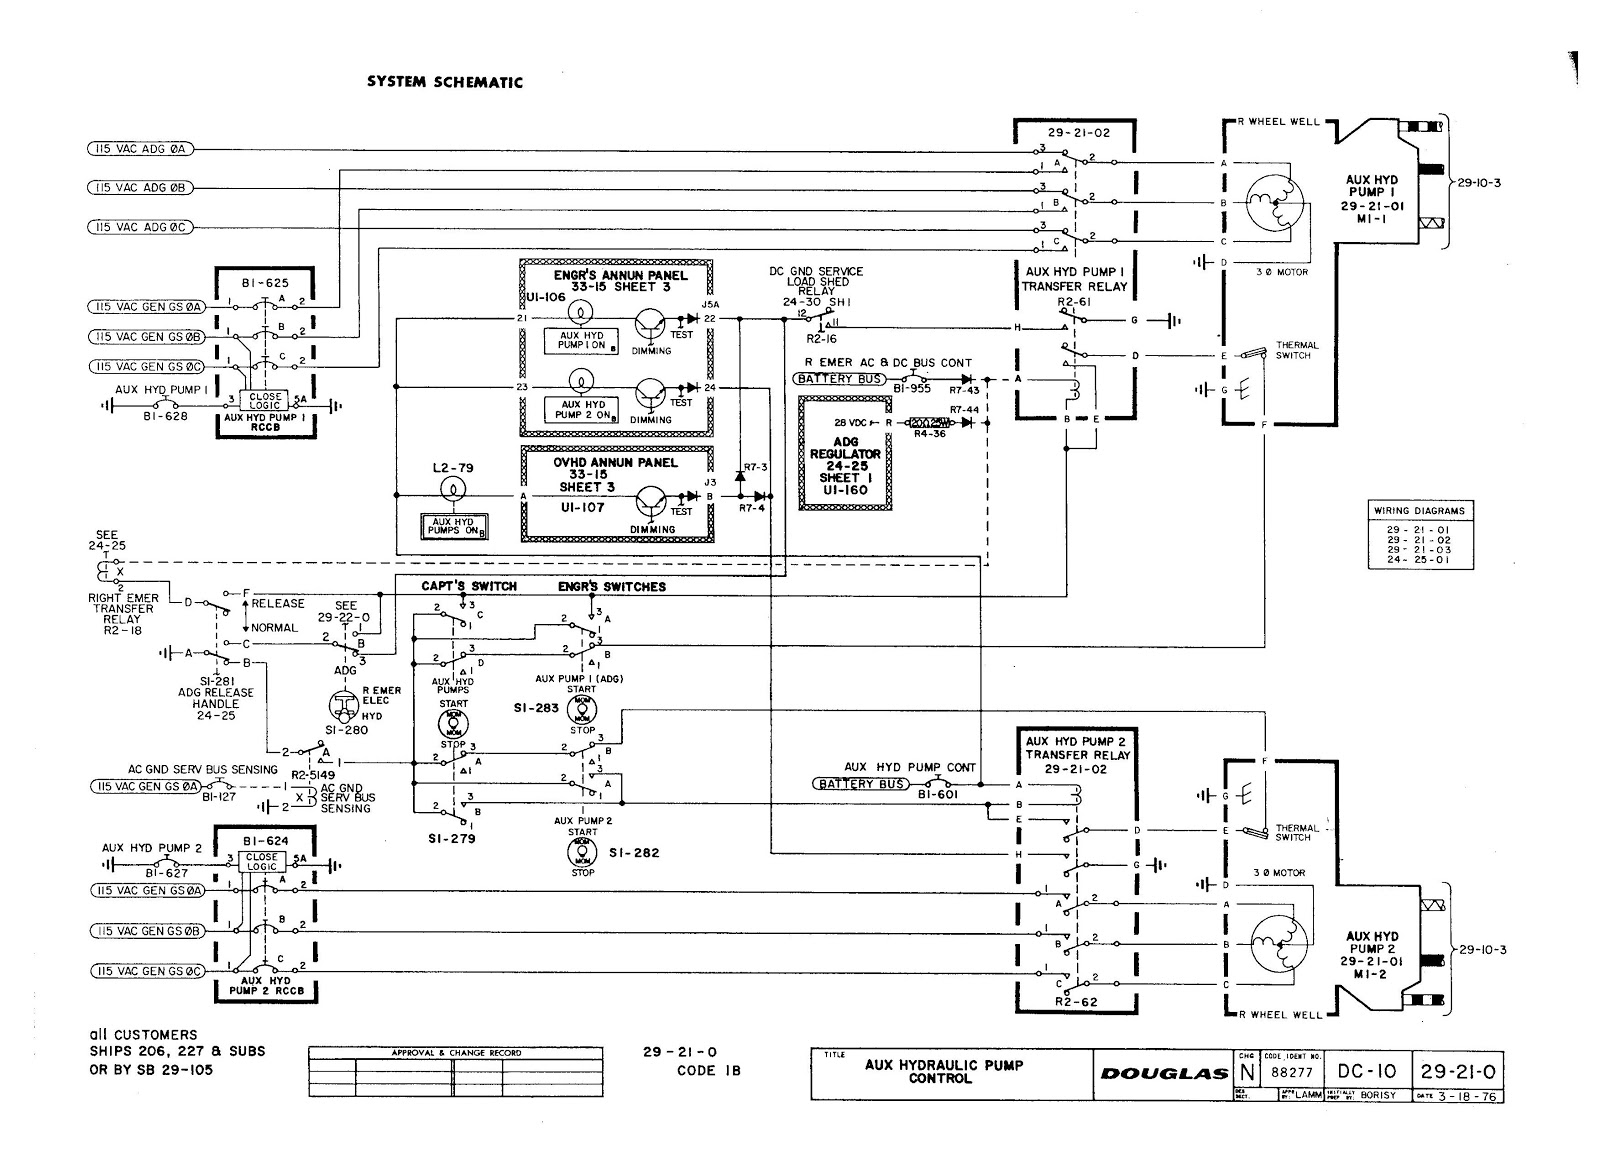 aircraft maintenance and tools 2015 rh aircraftmaintenanceandtools blogspot com Basic Electrical Wiring Diagrams Basic Electrical Schematic Diagrams